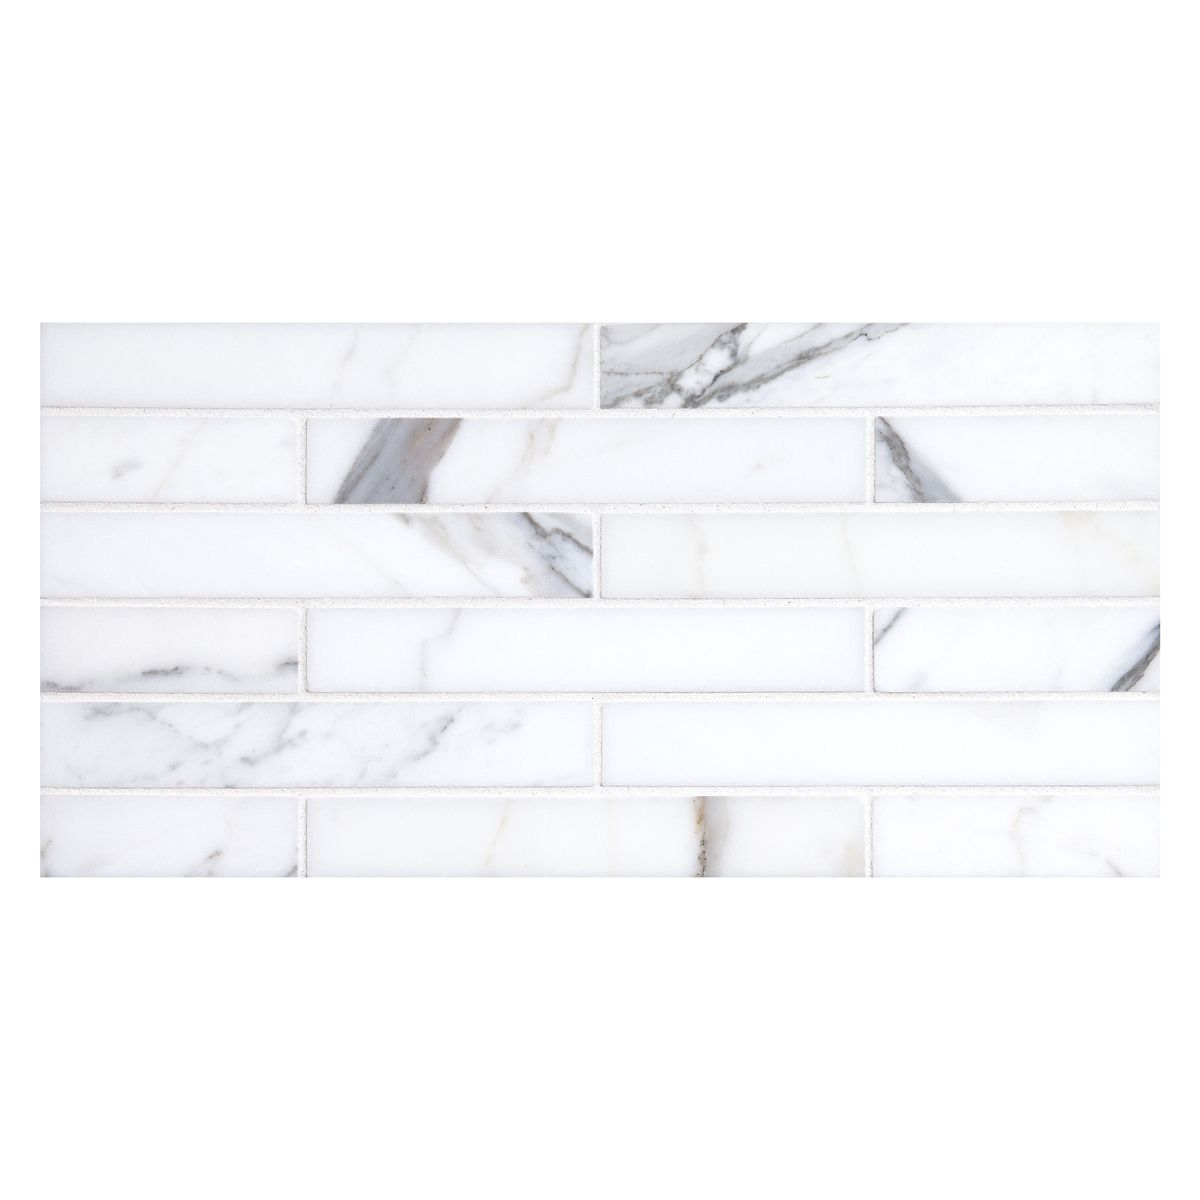 Complete Tile Collection Mosaic Tile Patterns Brick 1 X 6 Staggered Mi 039 S2 400 163 Color Calacatta Polished Stonemosaics Mosaic Calacatta Brick